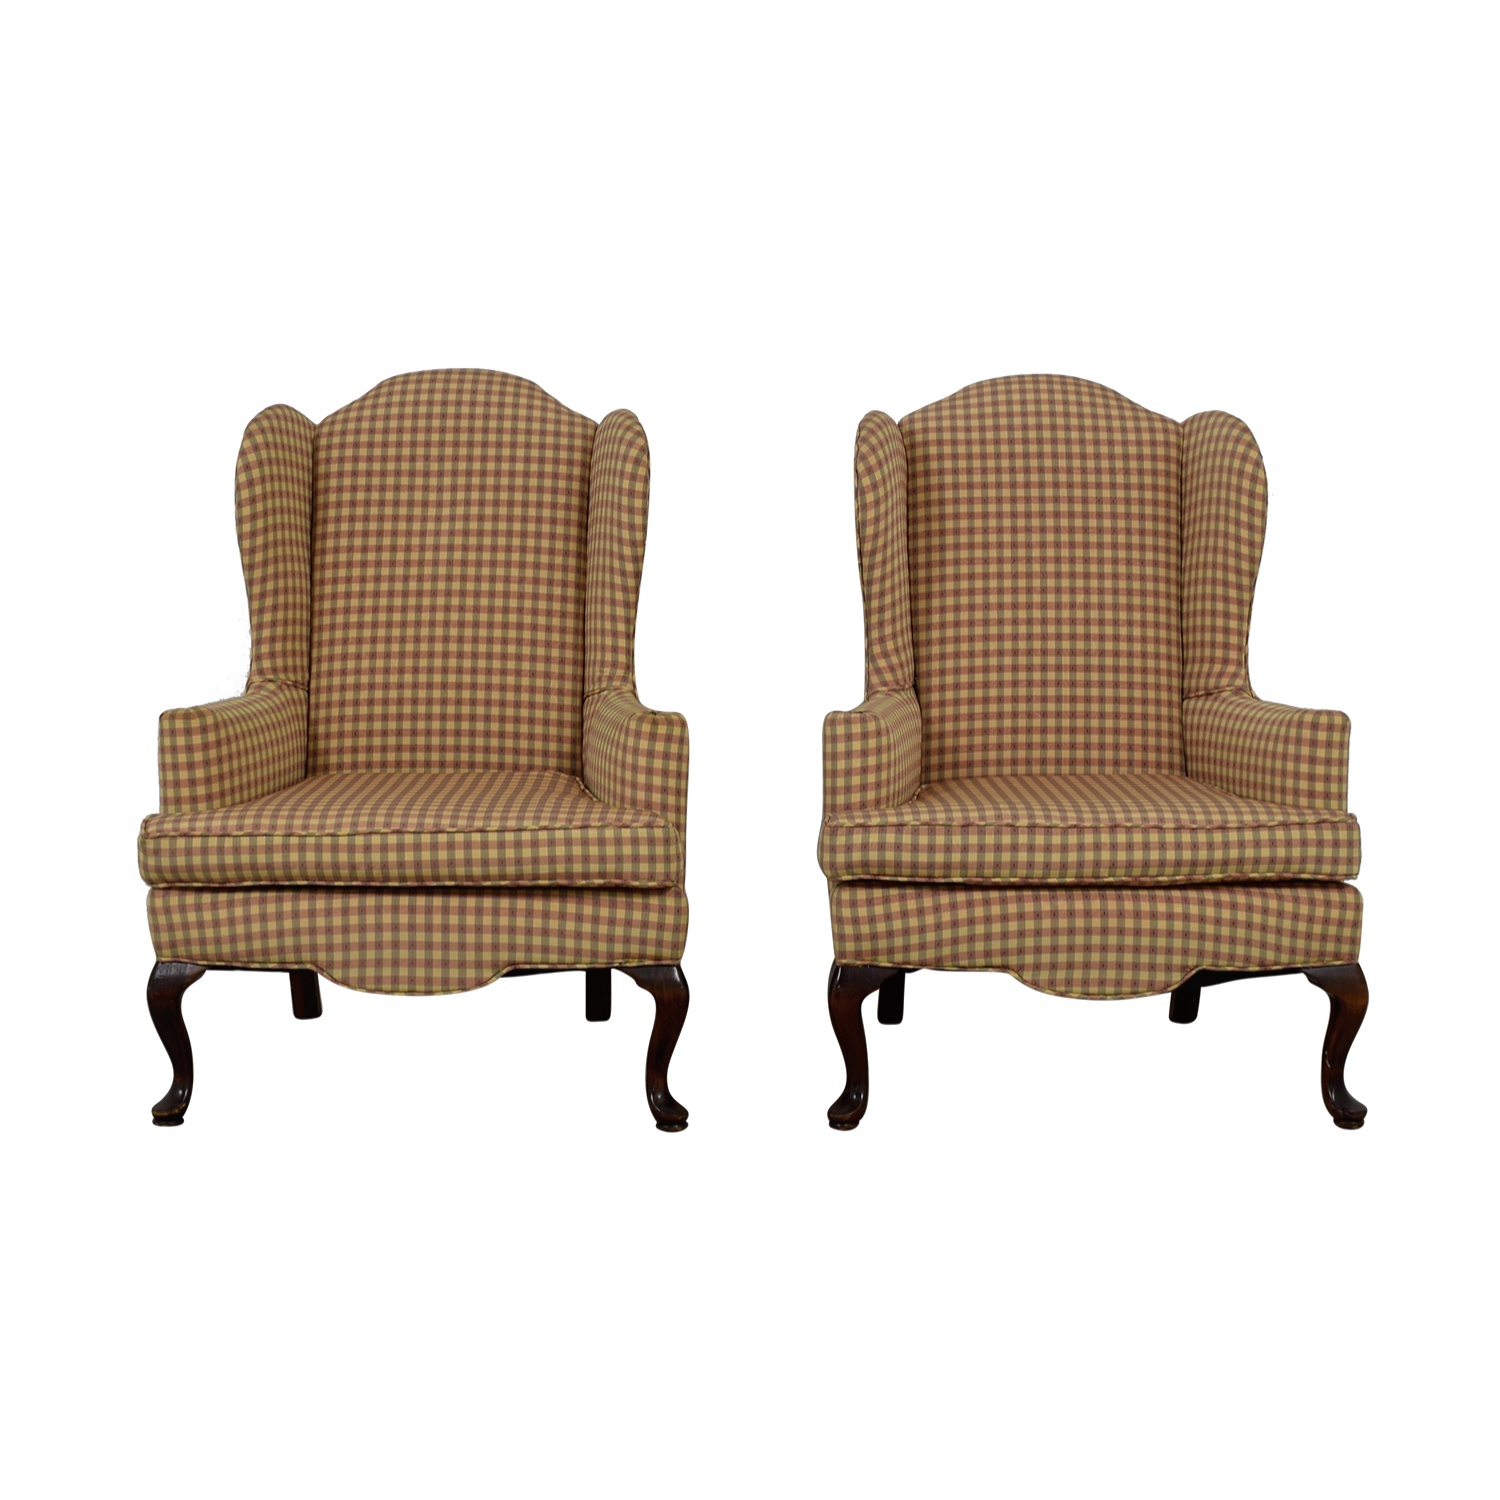 buy Ethan Allen Ethan Allen Plaid Queen Anne Accent Chairs online